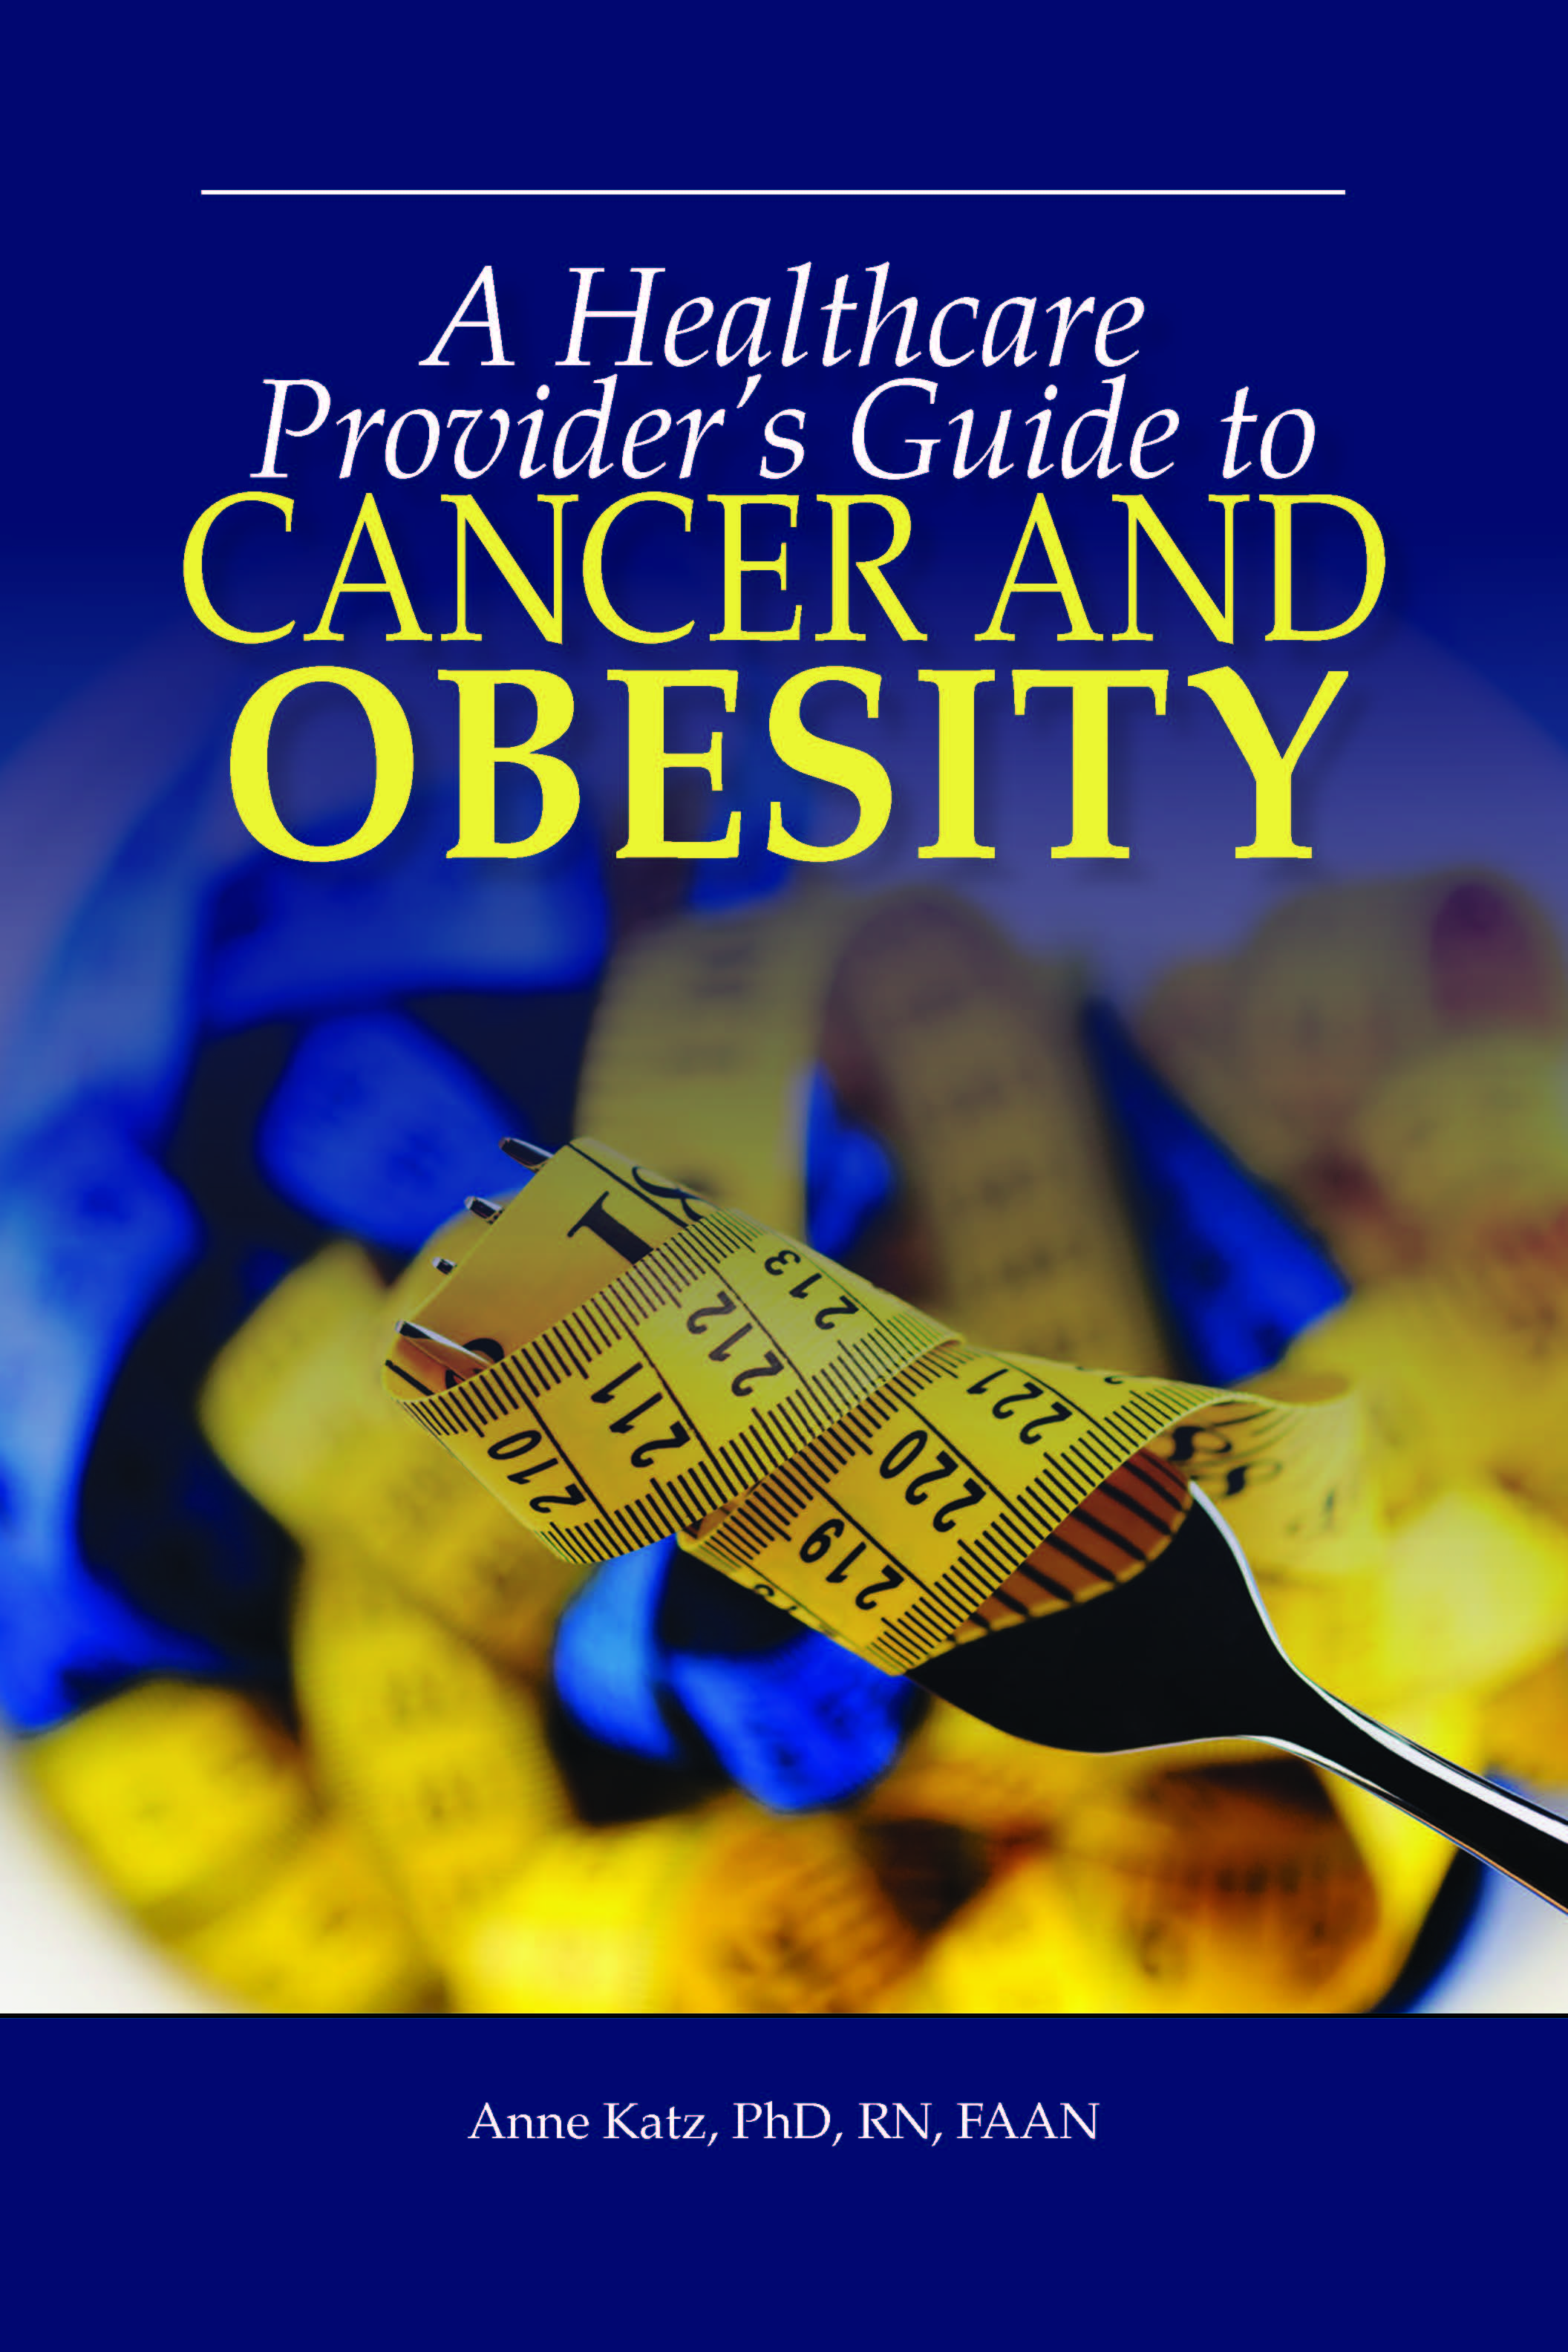 A Healthcare Providers Guide to Cancer and Obesity